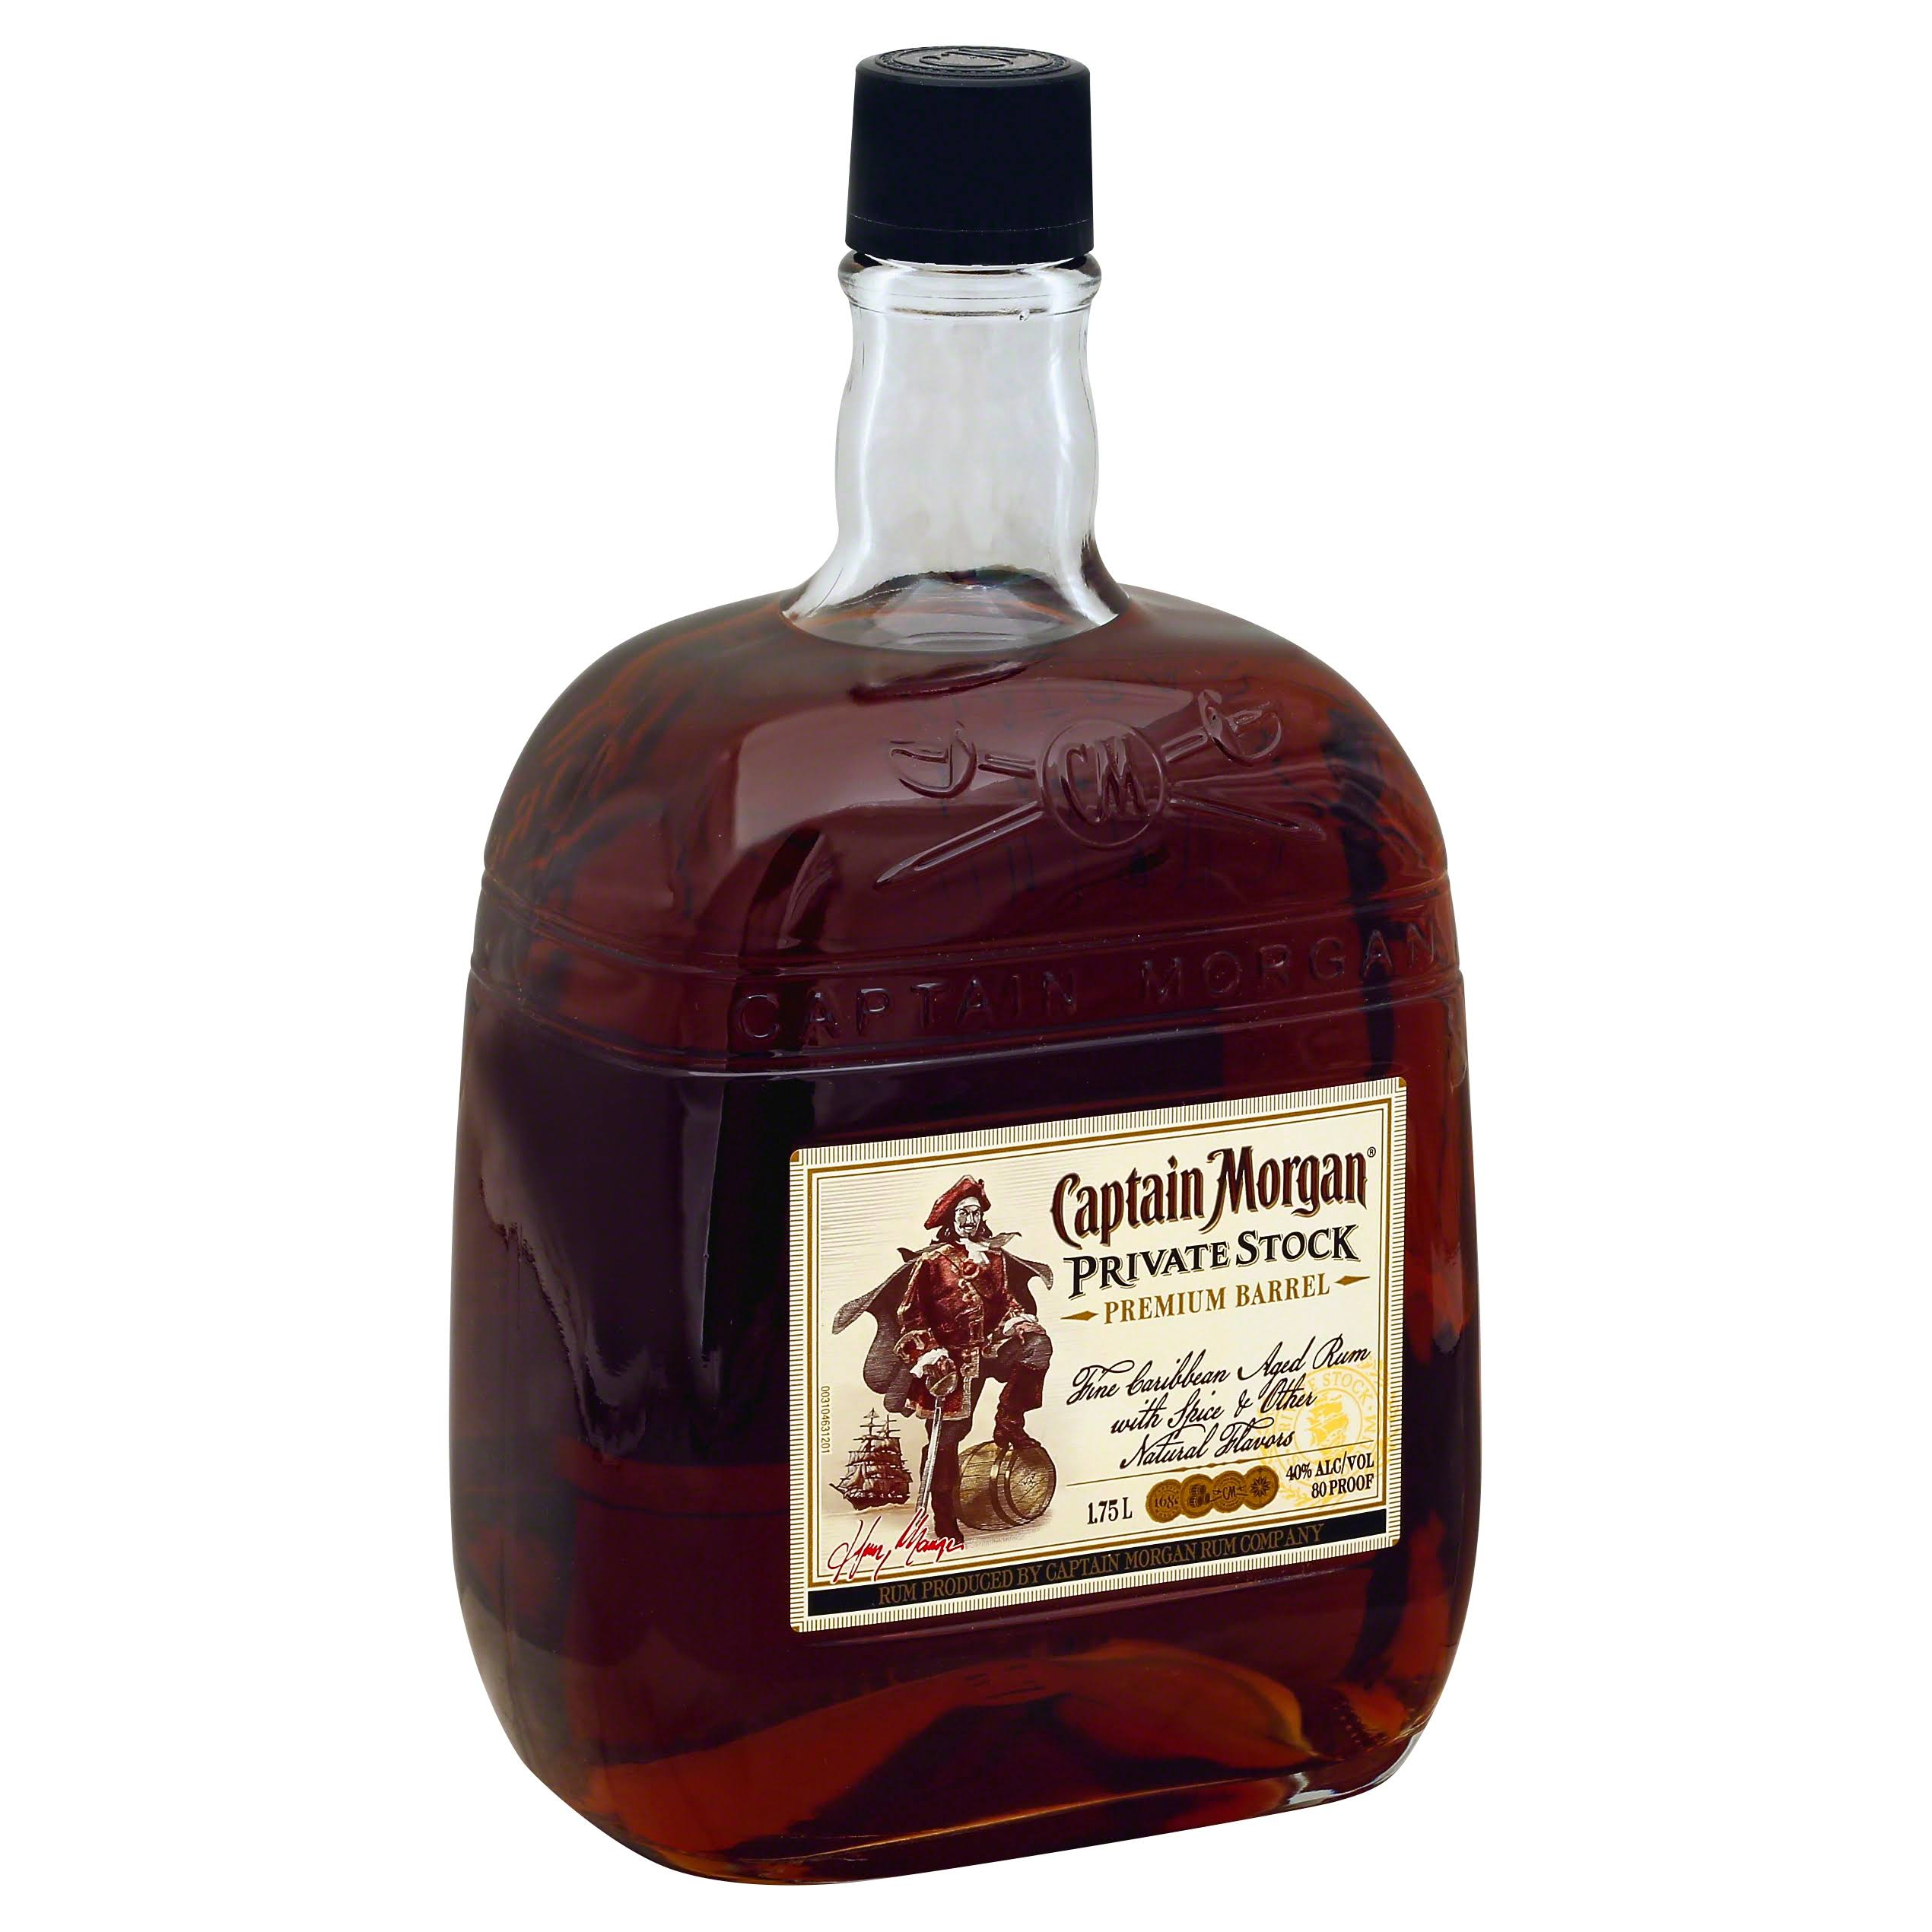 Captain Morgan's Private Stock Rum - 750ml